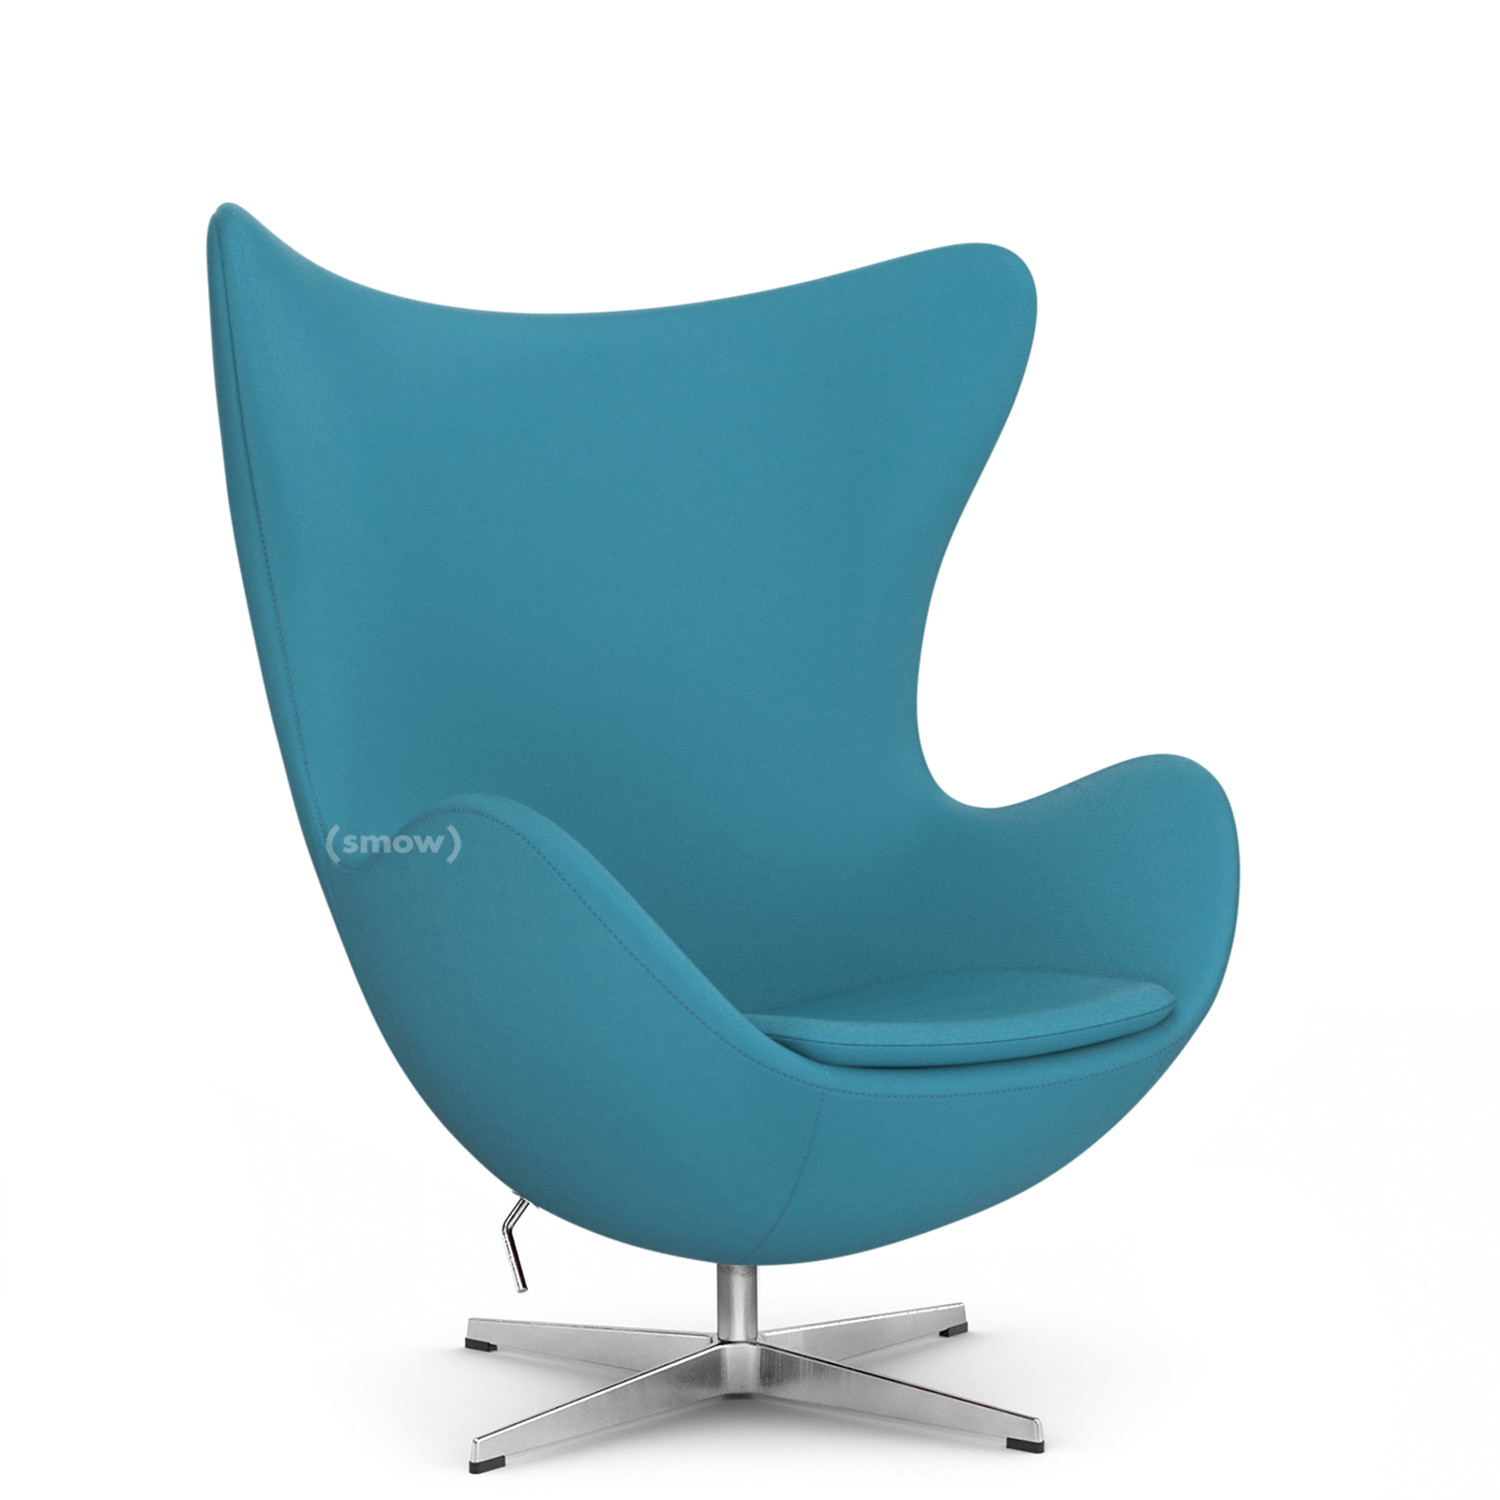 Fritz Hansen Egg Chair By Arne Jacobsen 1958 Designer Furniture